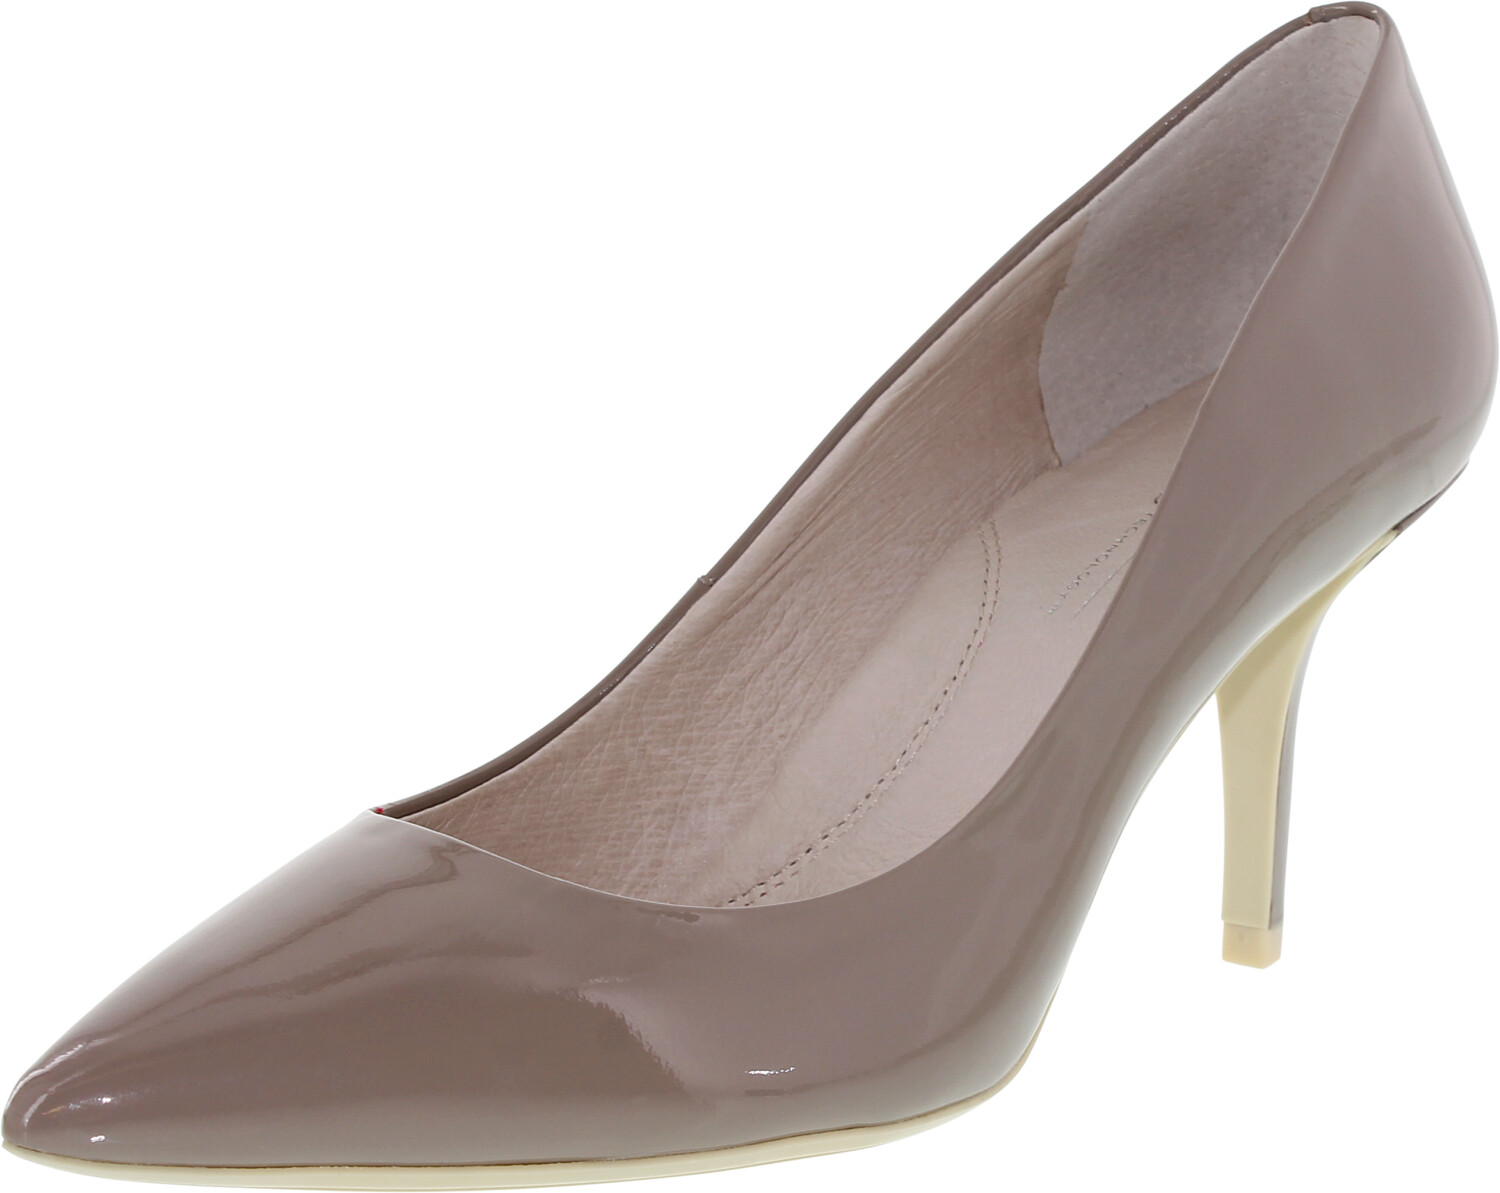 Kenneth Cole Women's Lori Stone Ankle-High Leather Pump - 9M